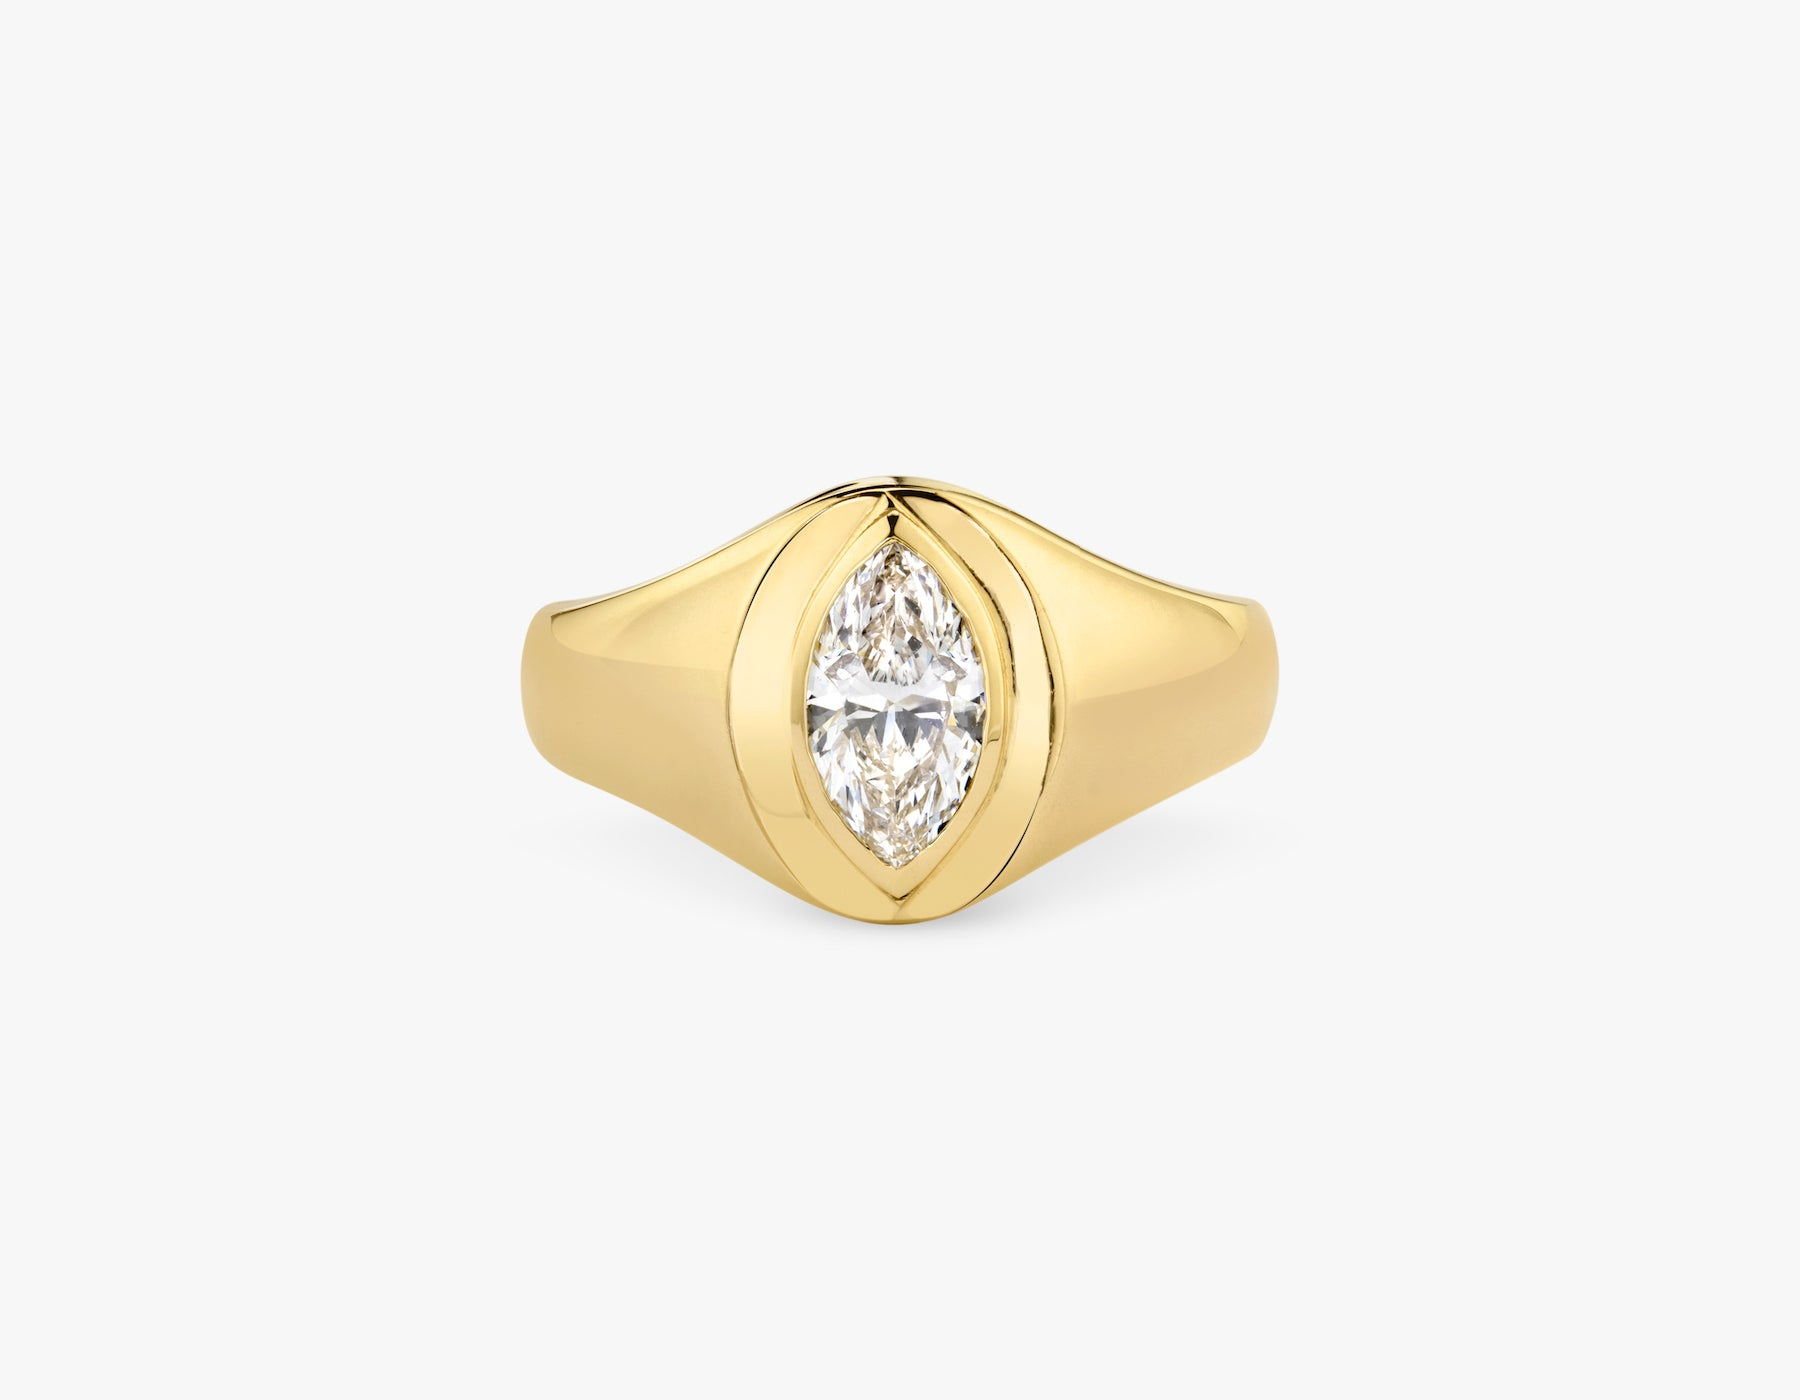 Vrai 14k solid gold classic simple Marquise Diamond Signet Ring, 14K Yellow Gold